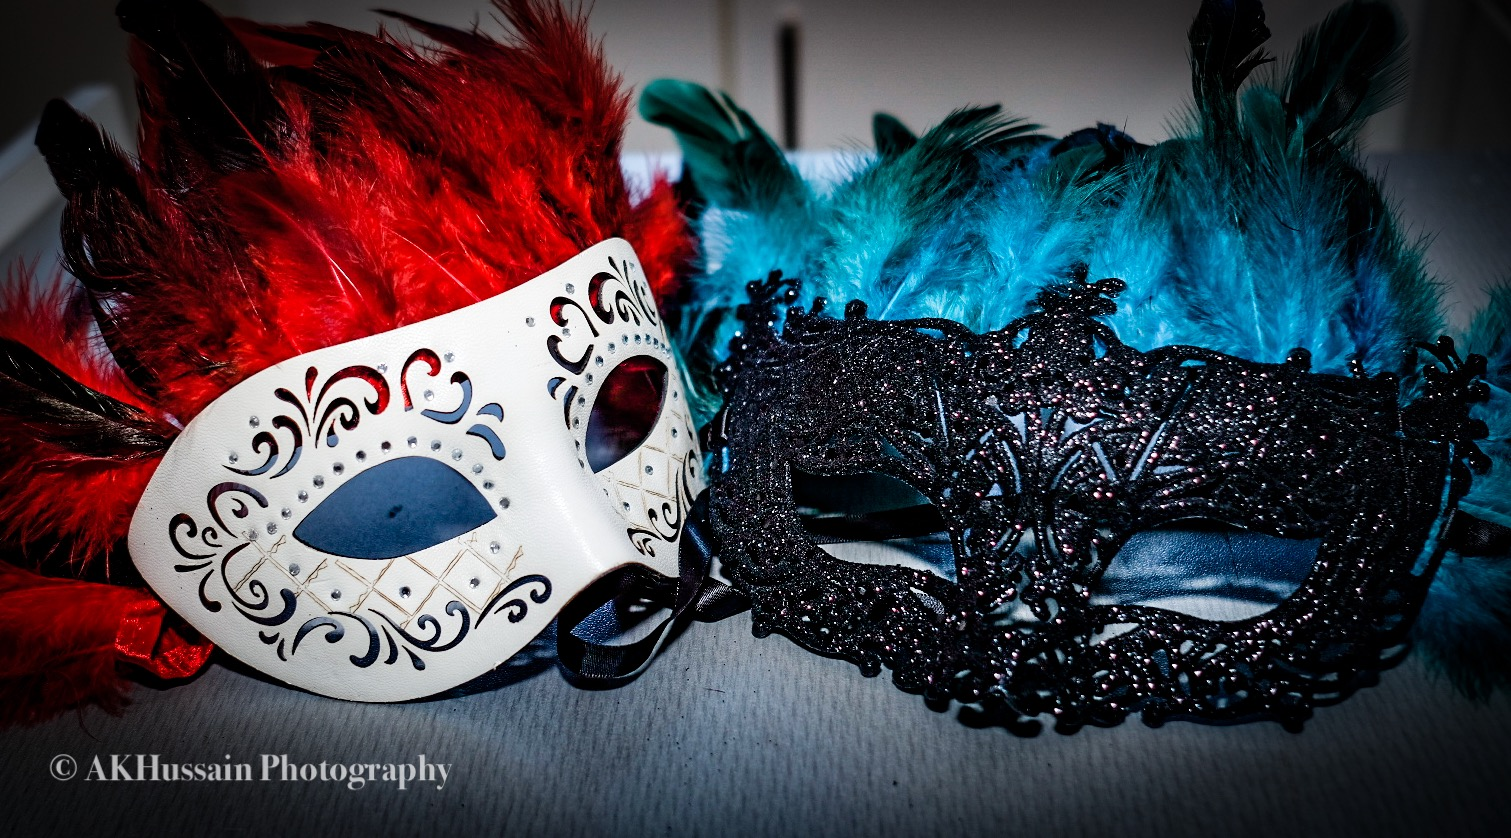 My homemade masks.. yes i wore them too